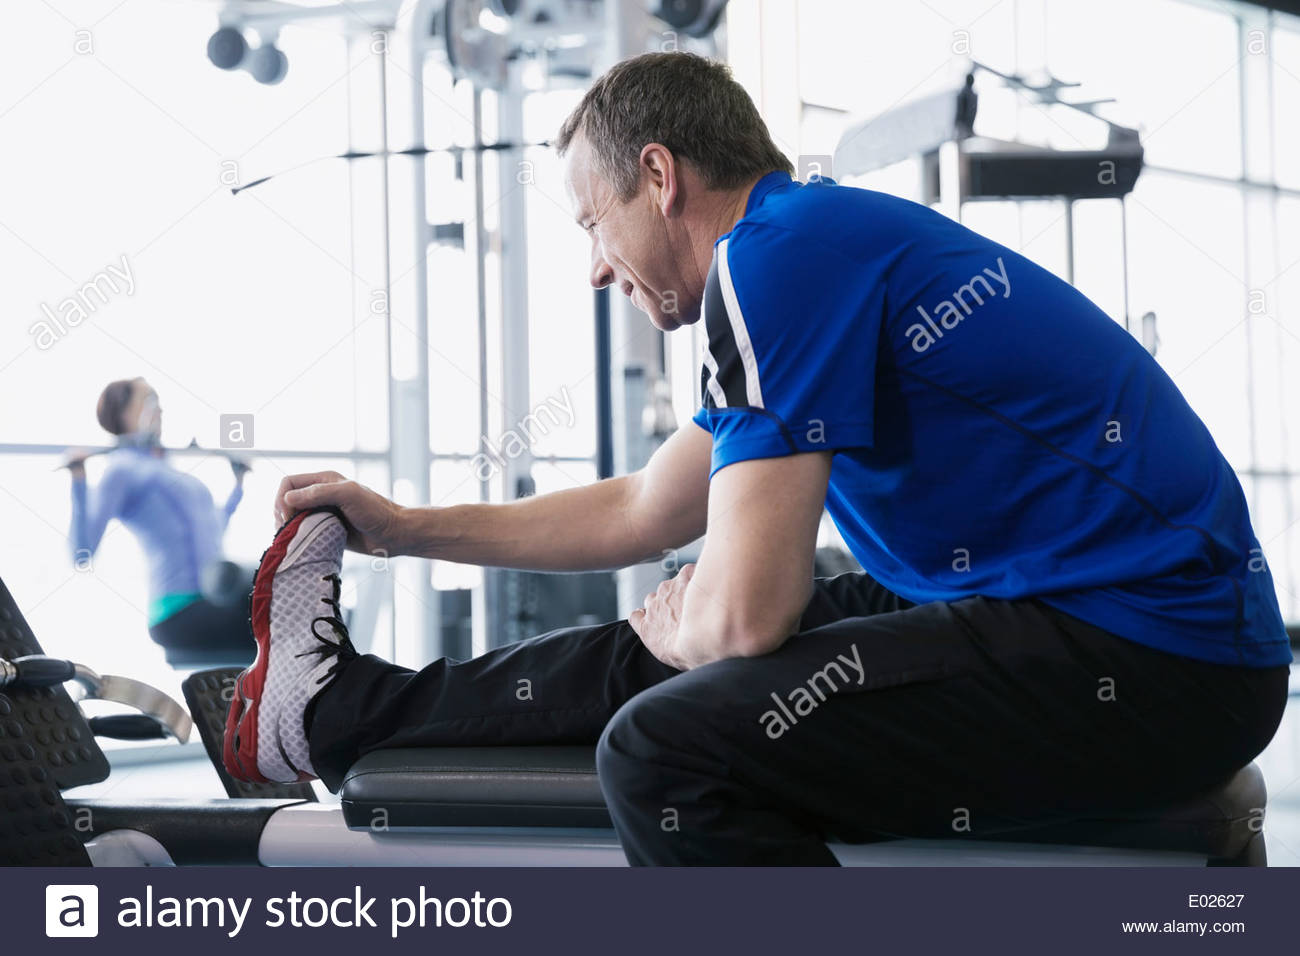 Man stretching leg at gym Photo Stock